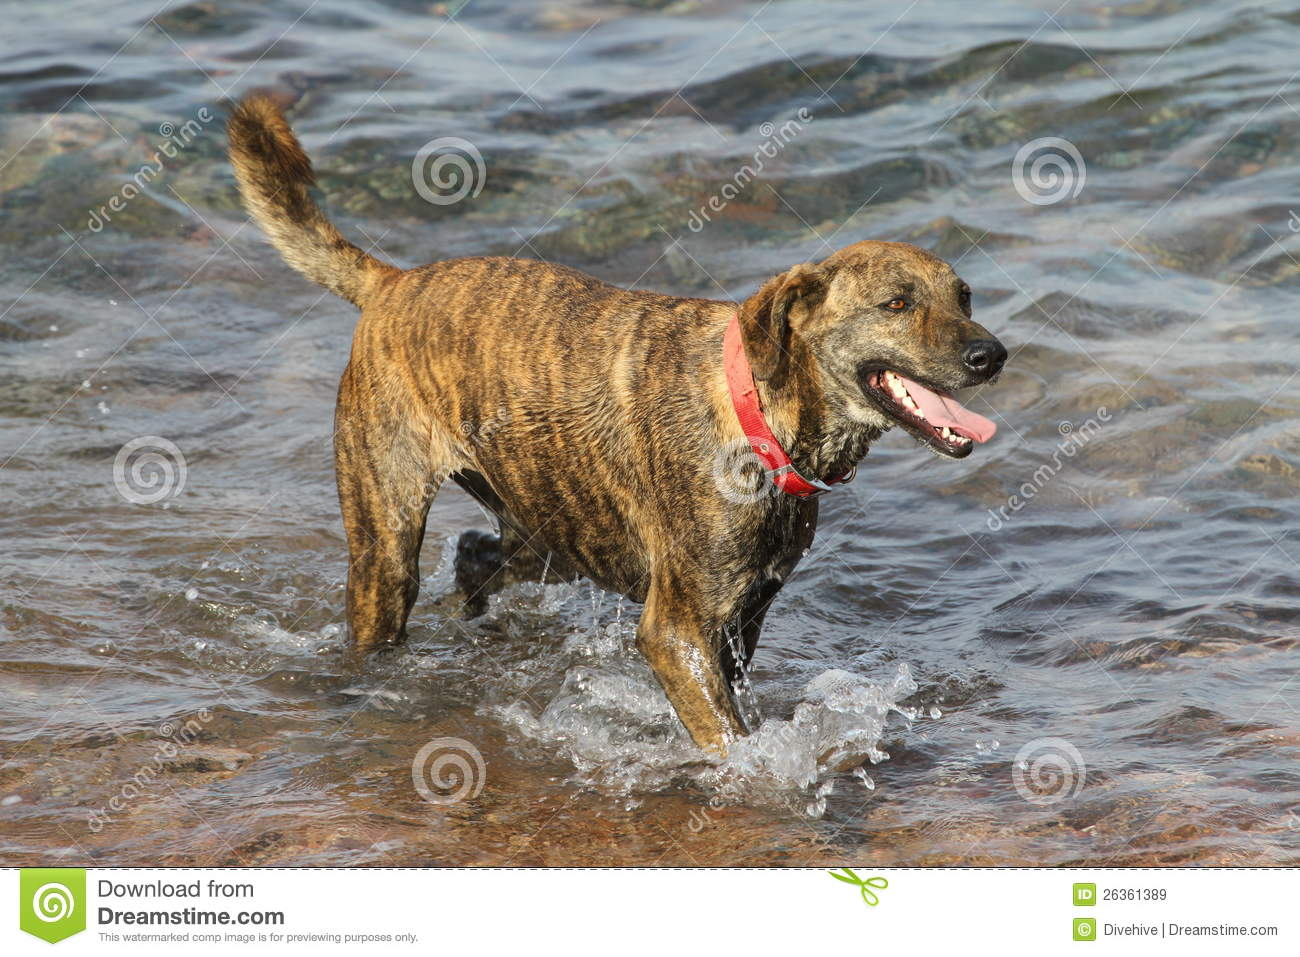 Dog with red collar standing in the water